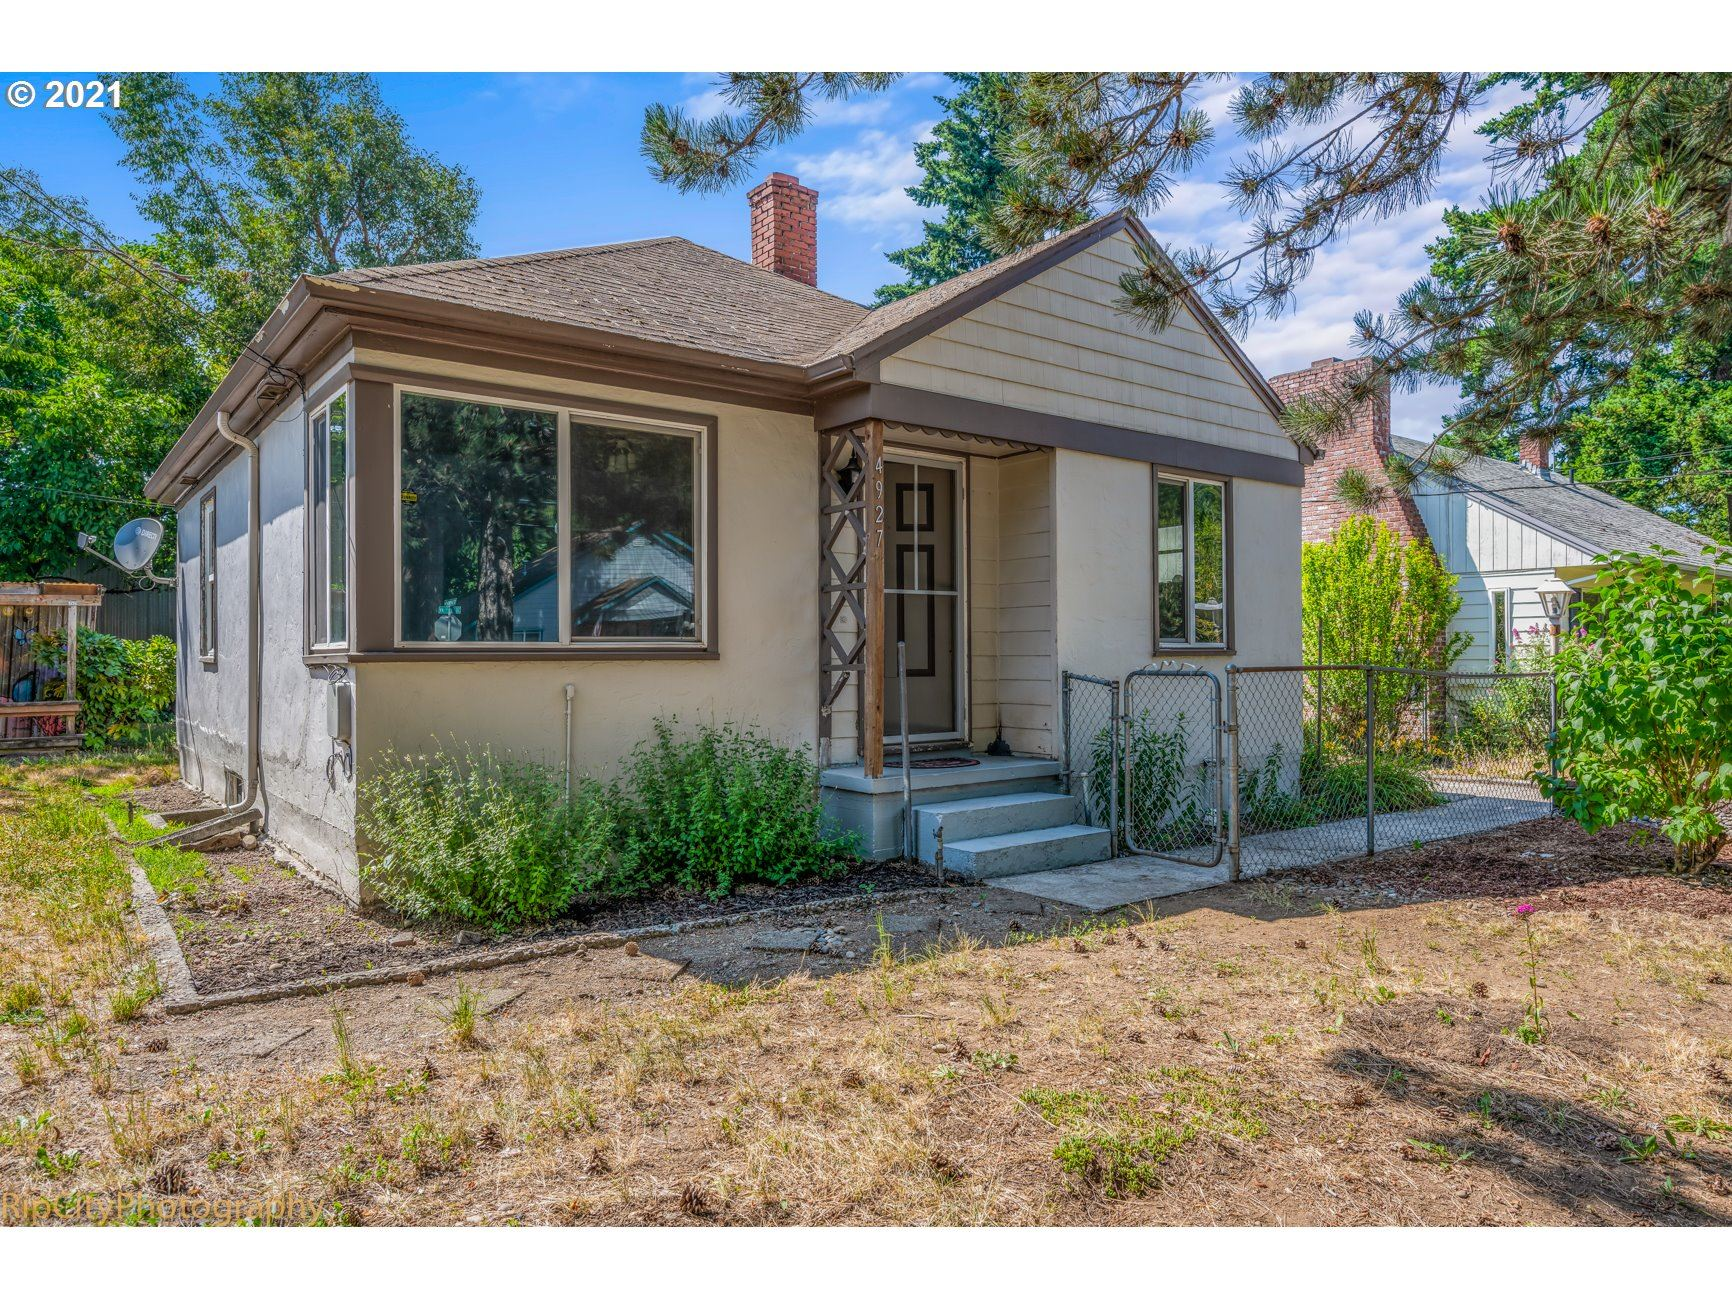 4927 SE 128TH AVE, Portland, OR 97236 - MLS#: 21530929